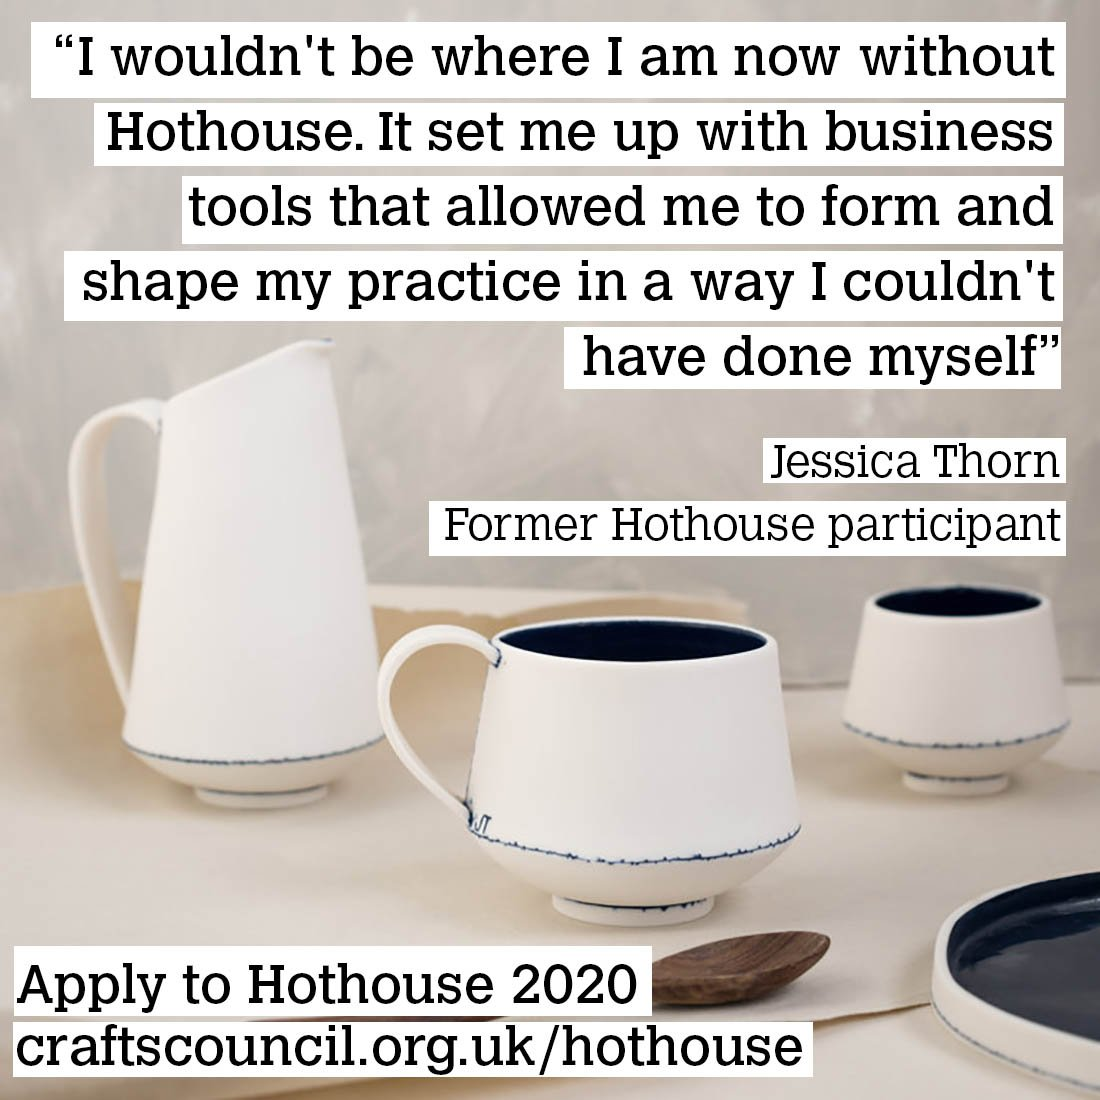 Last chance to apply to #Hothouse2020! Apply now before it's too late...bit.ly/2JErvgG